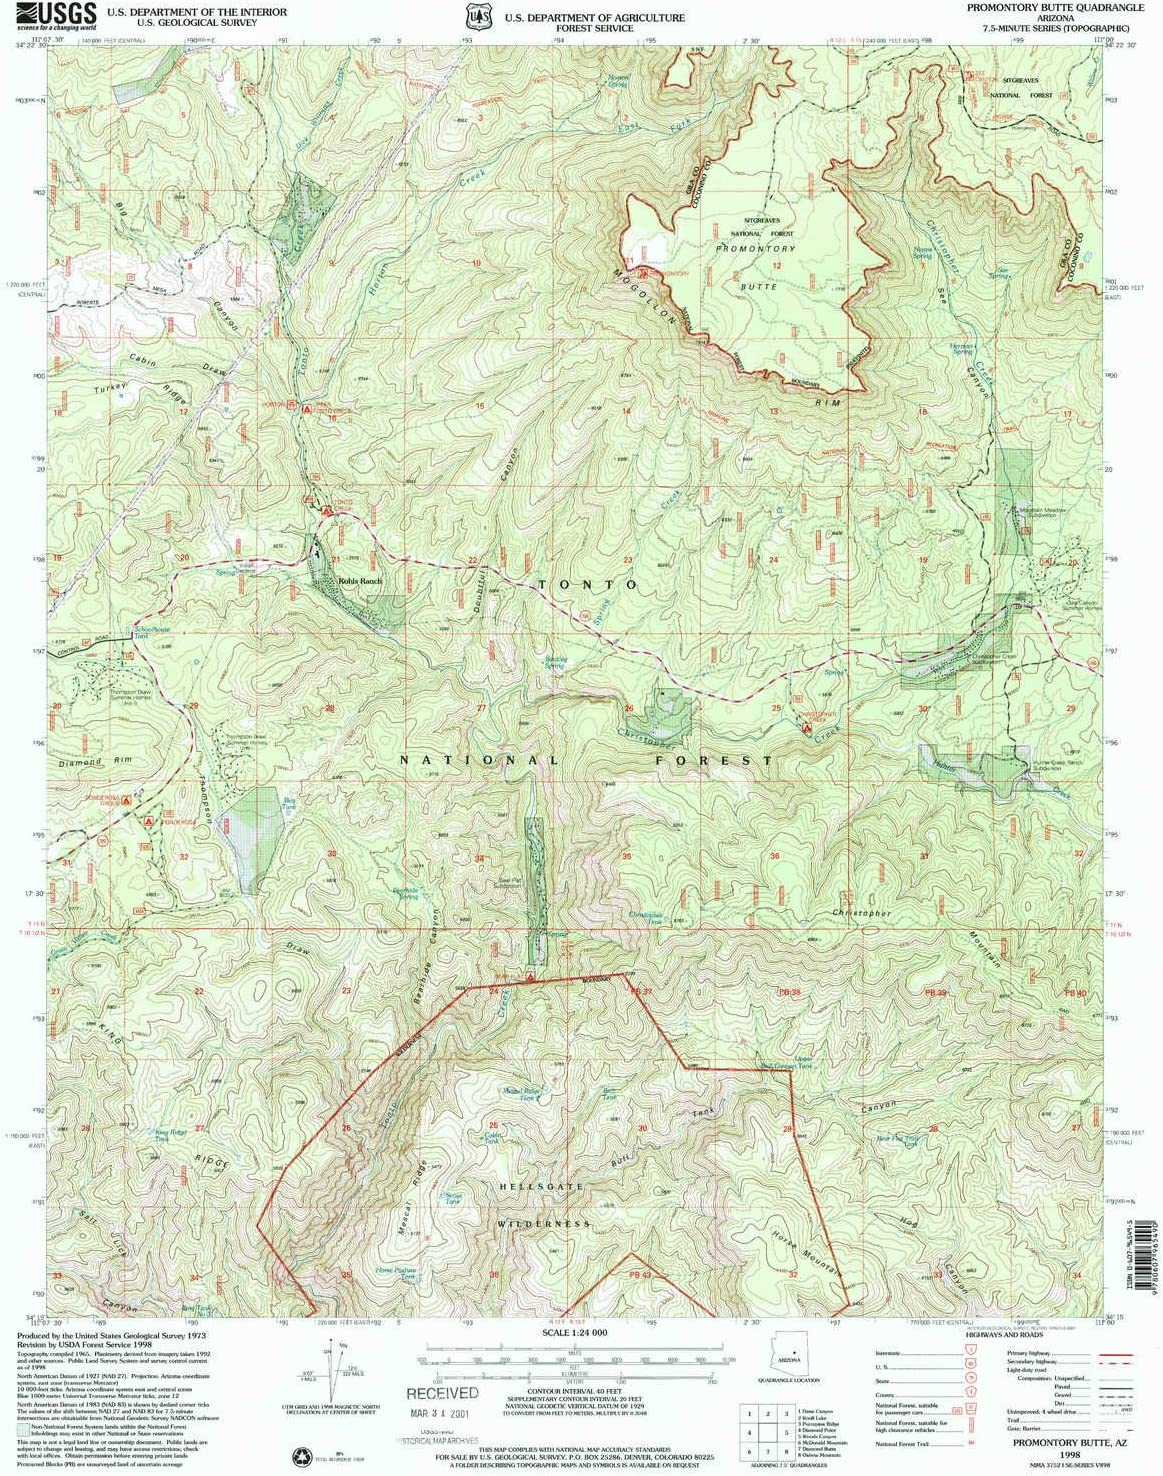 YellowMaps Promontory Butte AZ San Diego Mall Year-end gift topo map 7.5 7. Scale X 1:24000